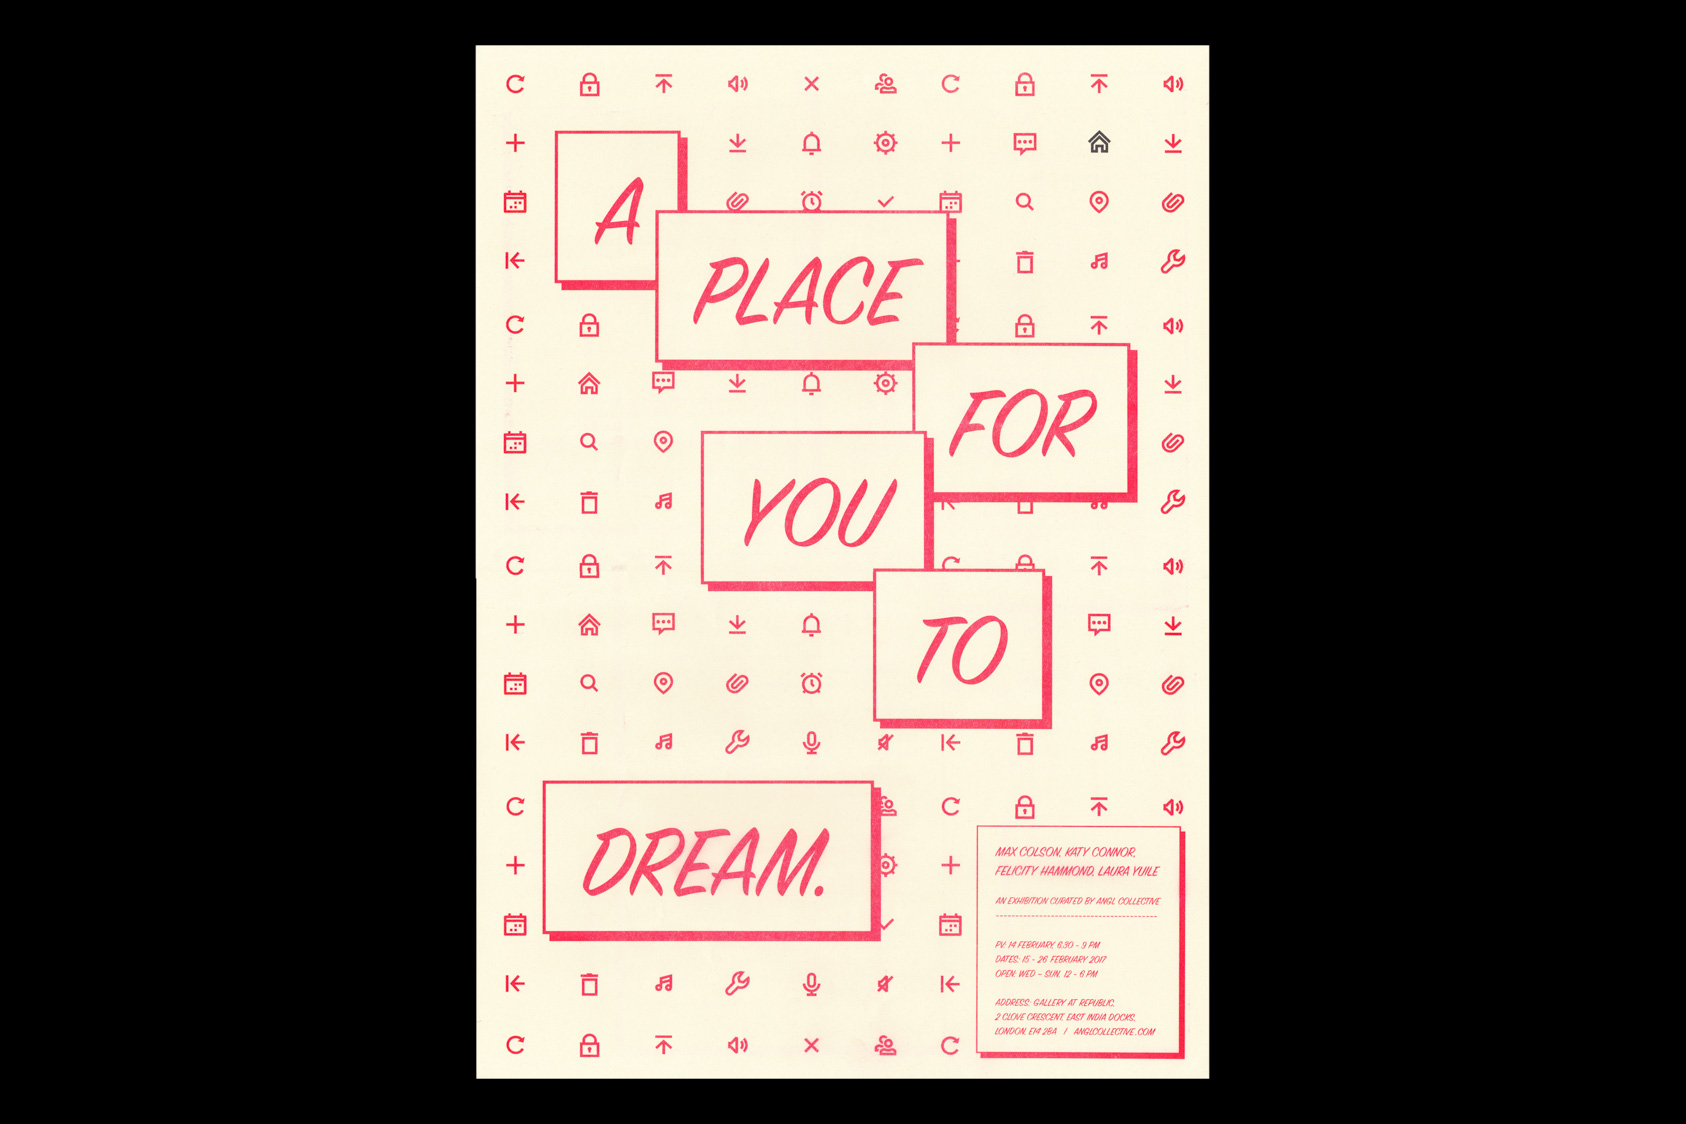 A place for you to dream - exhibition identity for Angl Curatorial Collective with poster and social media package, 2017 by the agency for emerging ideas